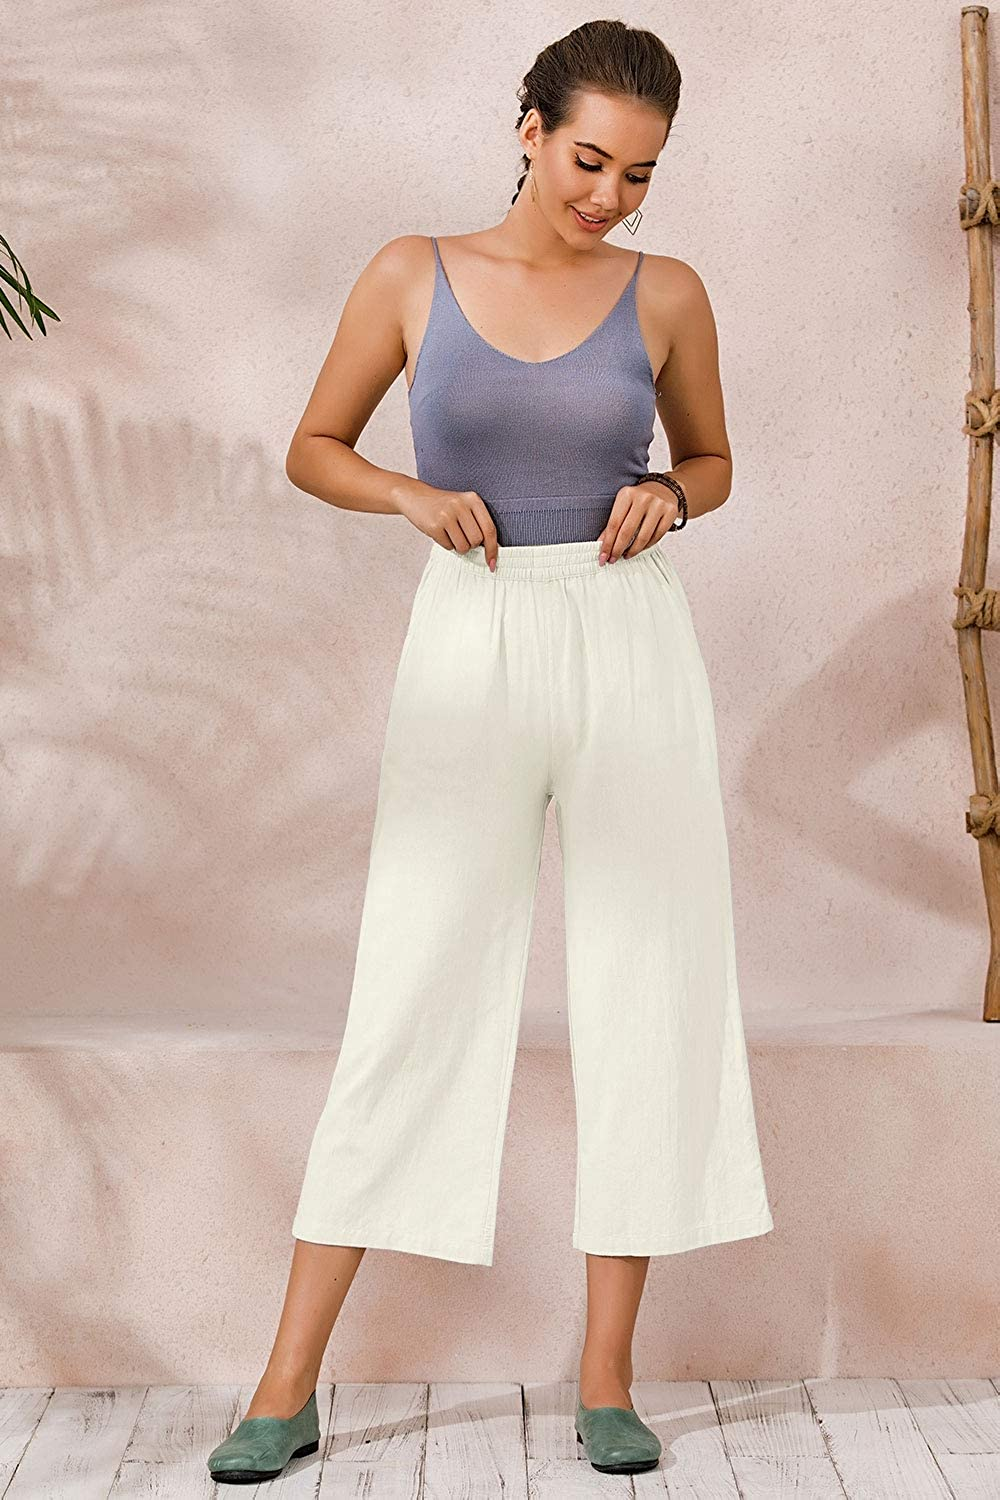 Ecupper Womens Plus Size Elastic Waist Cotton Capri Pants Relaxed Loose Casual Cropped Trousers